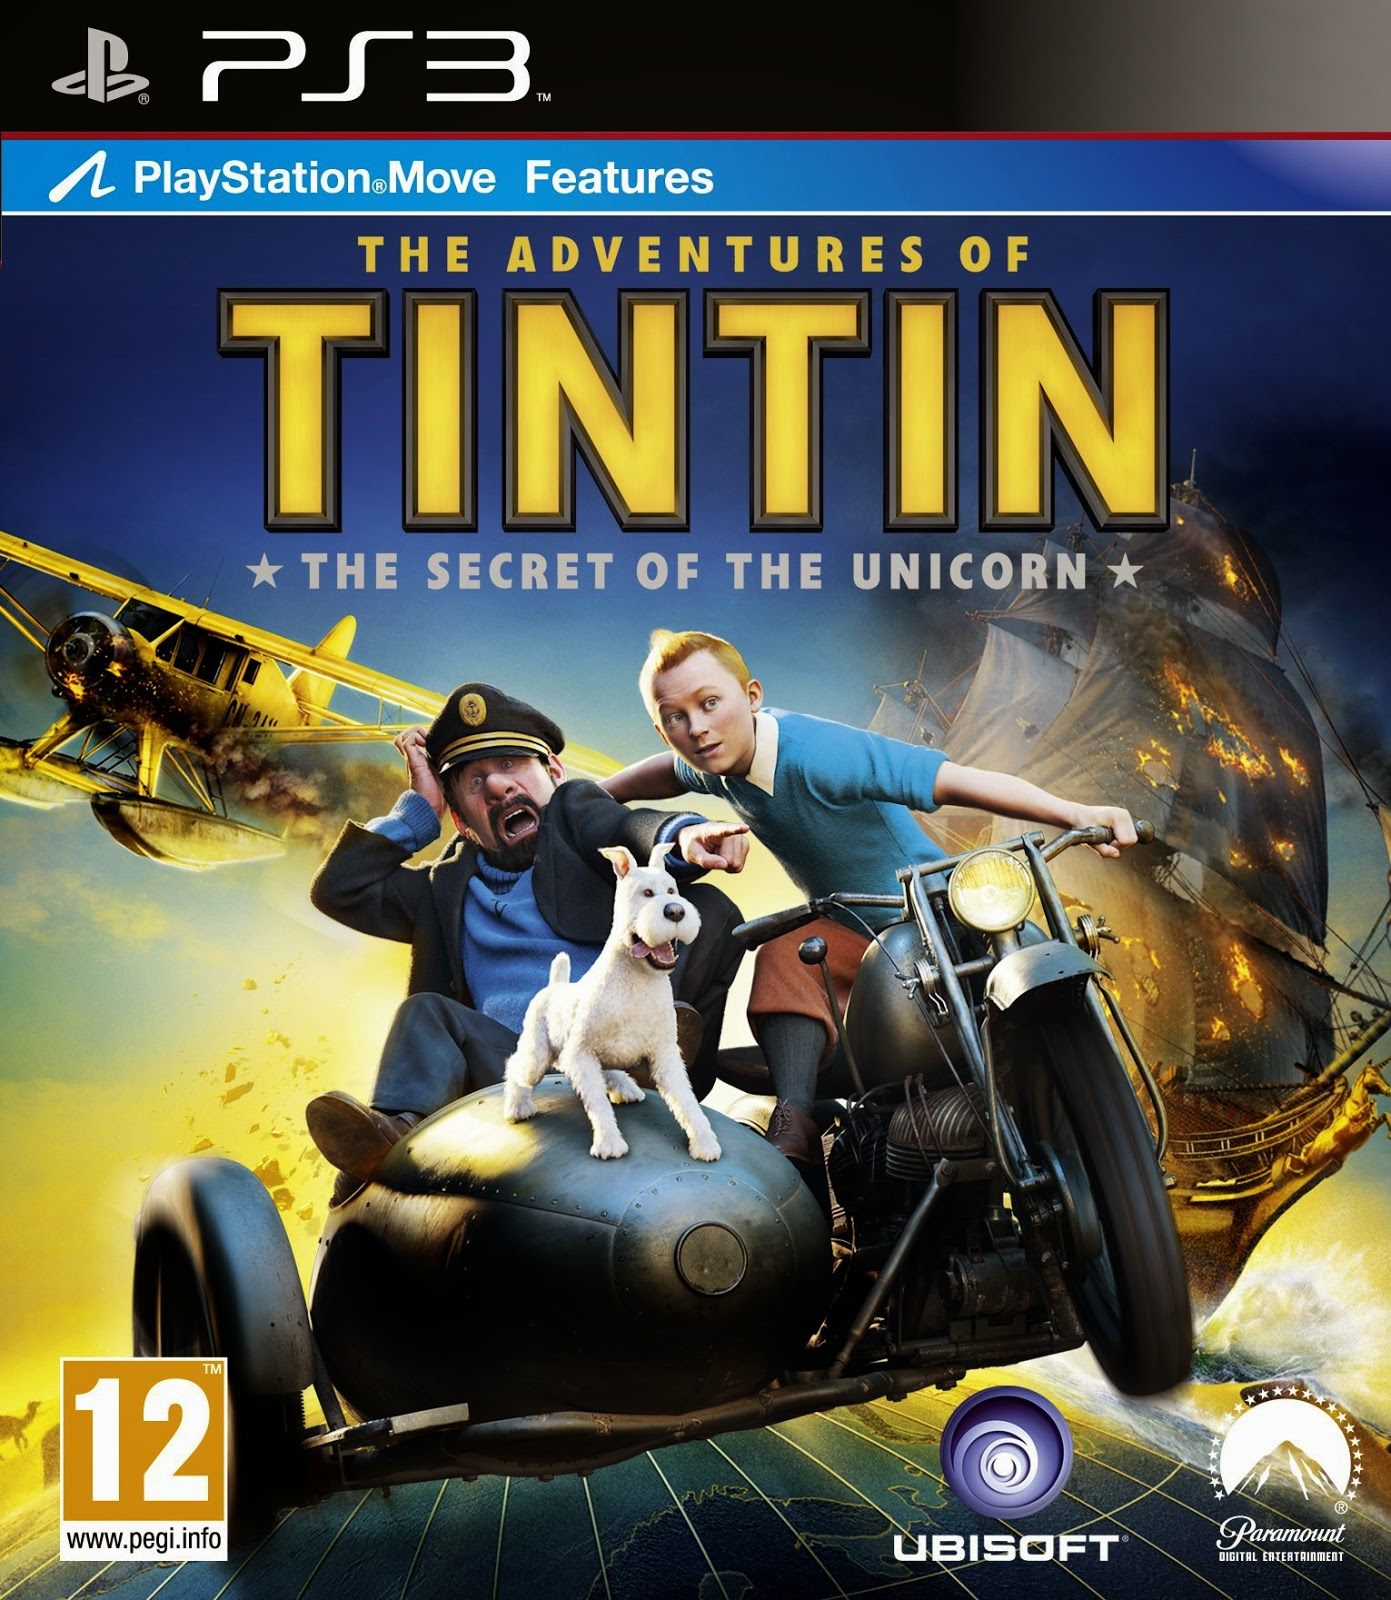 THE-ADVENTURES-OF-TINTIN-The-Secrets-of-the-Unicorn-PC-GAME